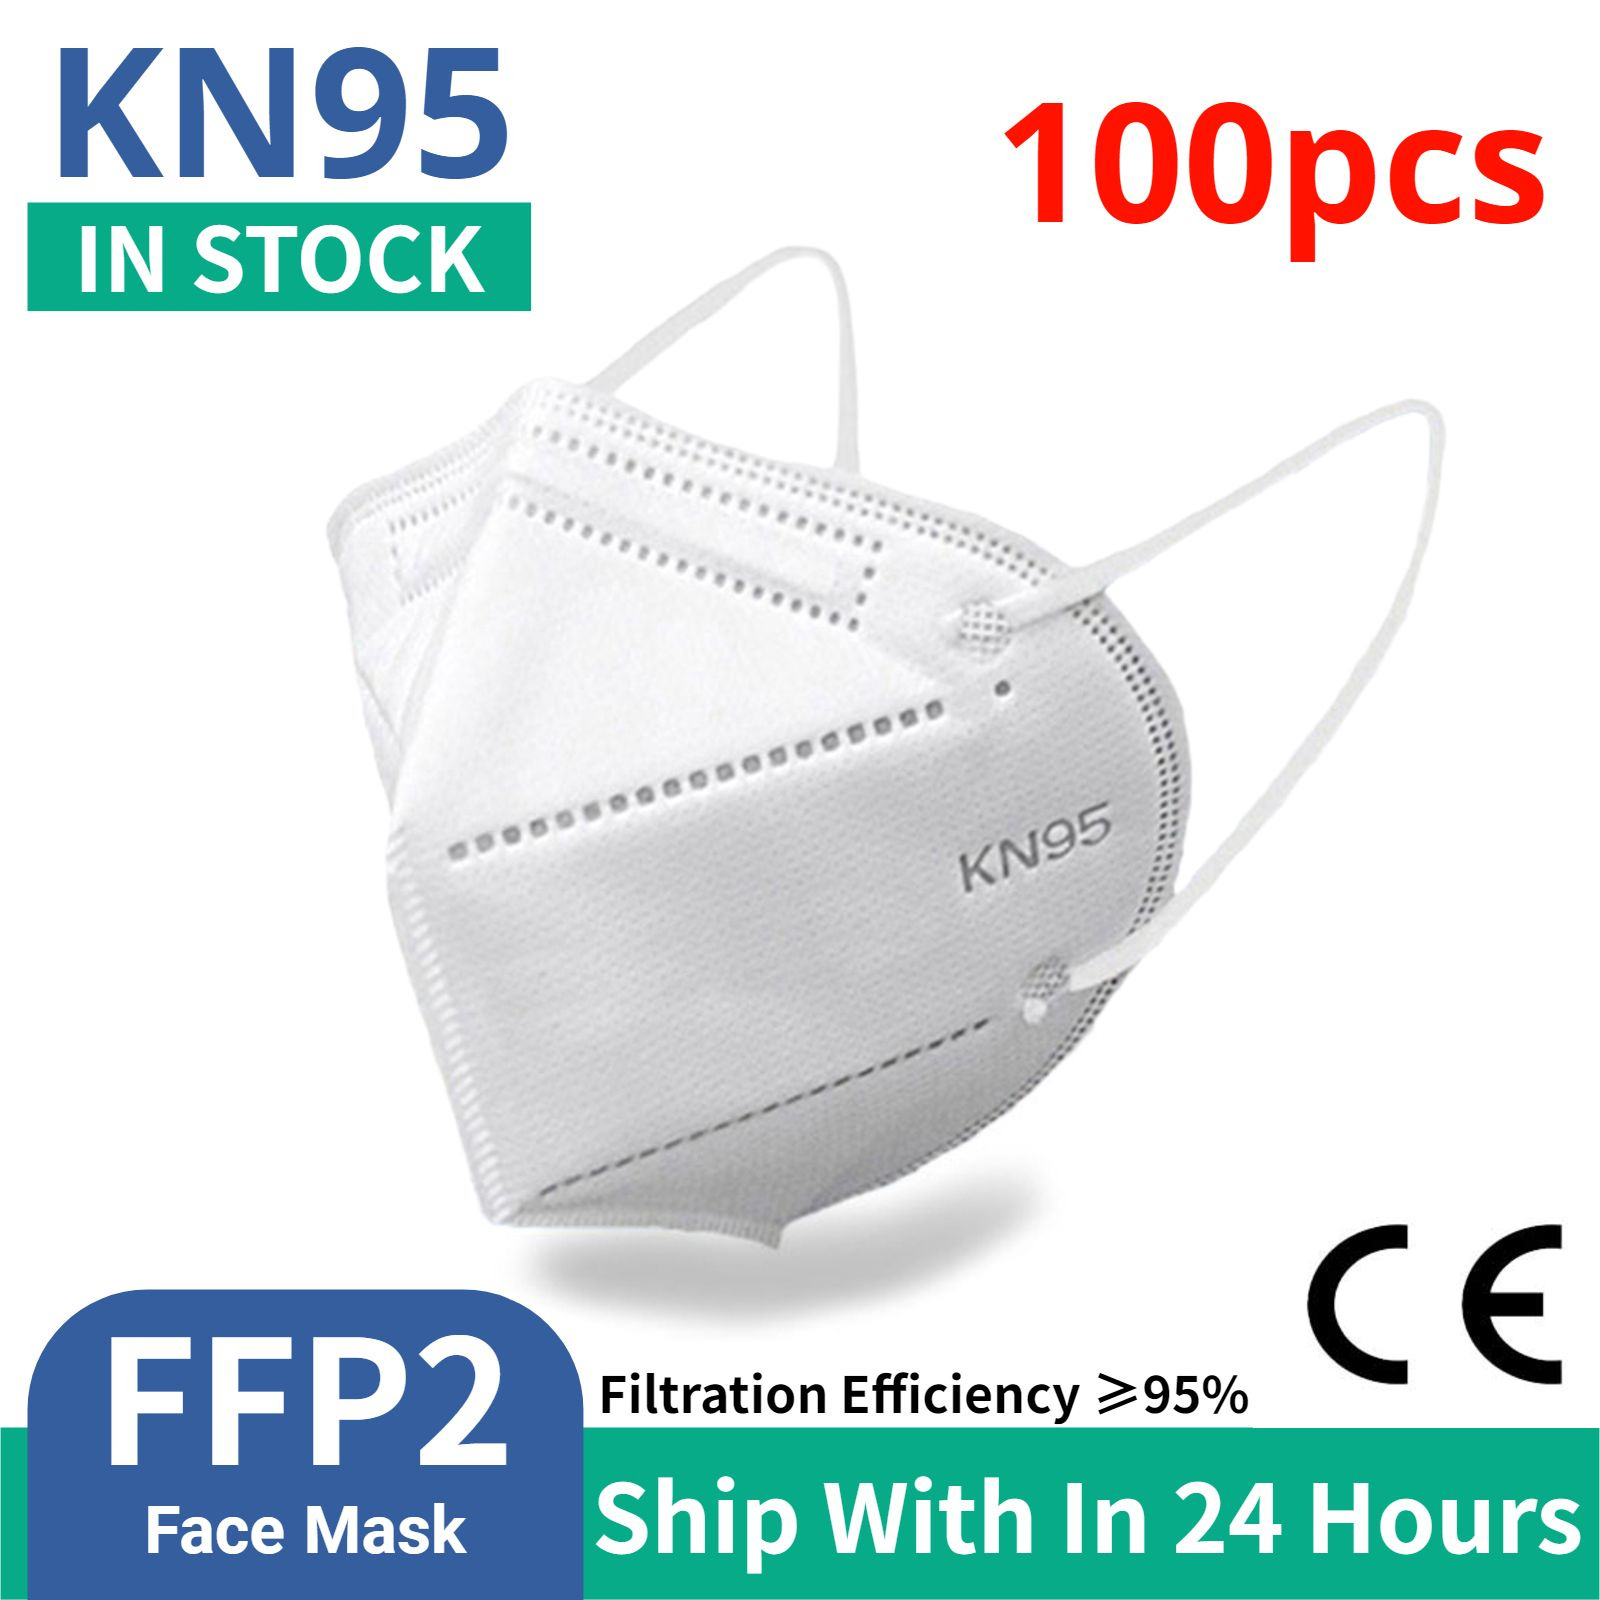 Protective-Mask Respirator Mascarillas Disposable Ffp2mask 1-100PCS 95%FILTER 5-Layer